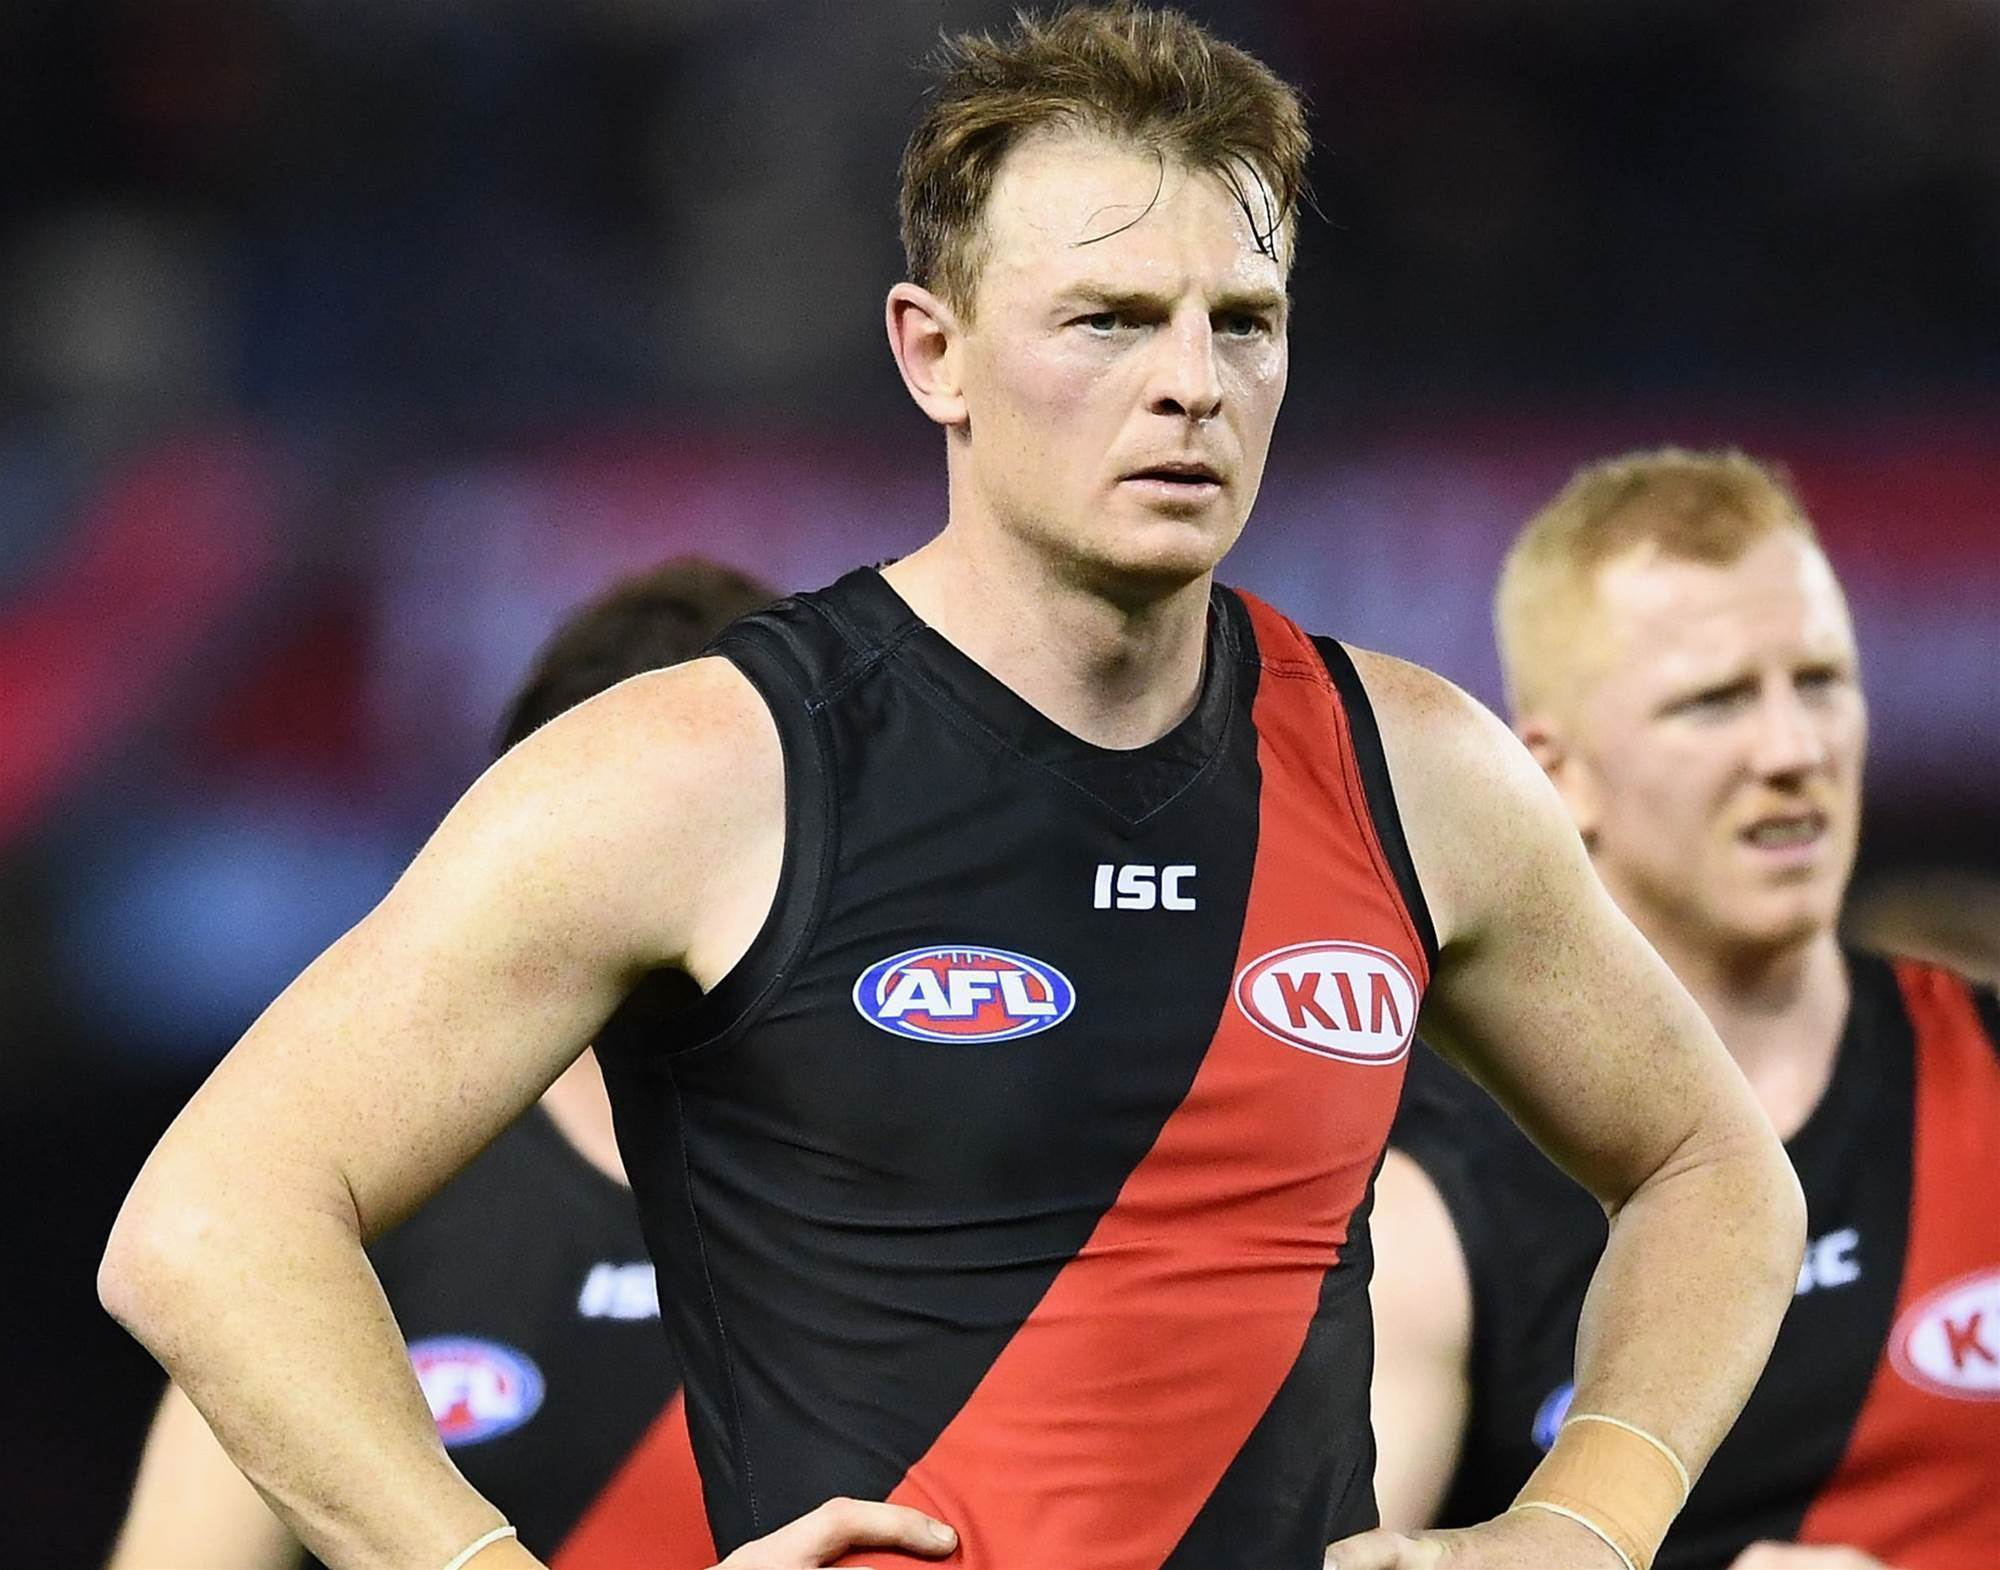 Bomber confident ahead of Swans showdown